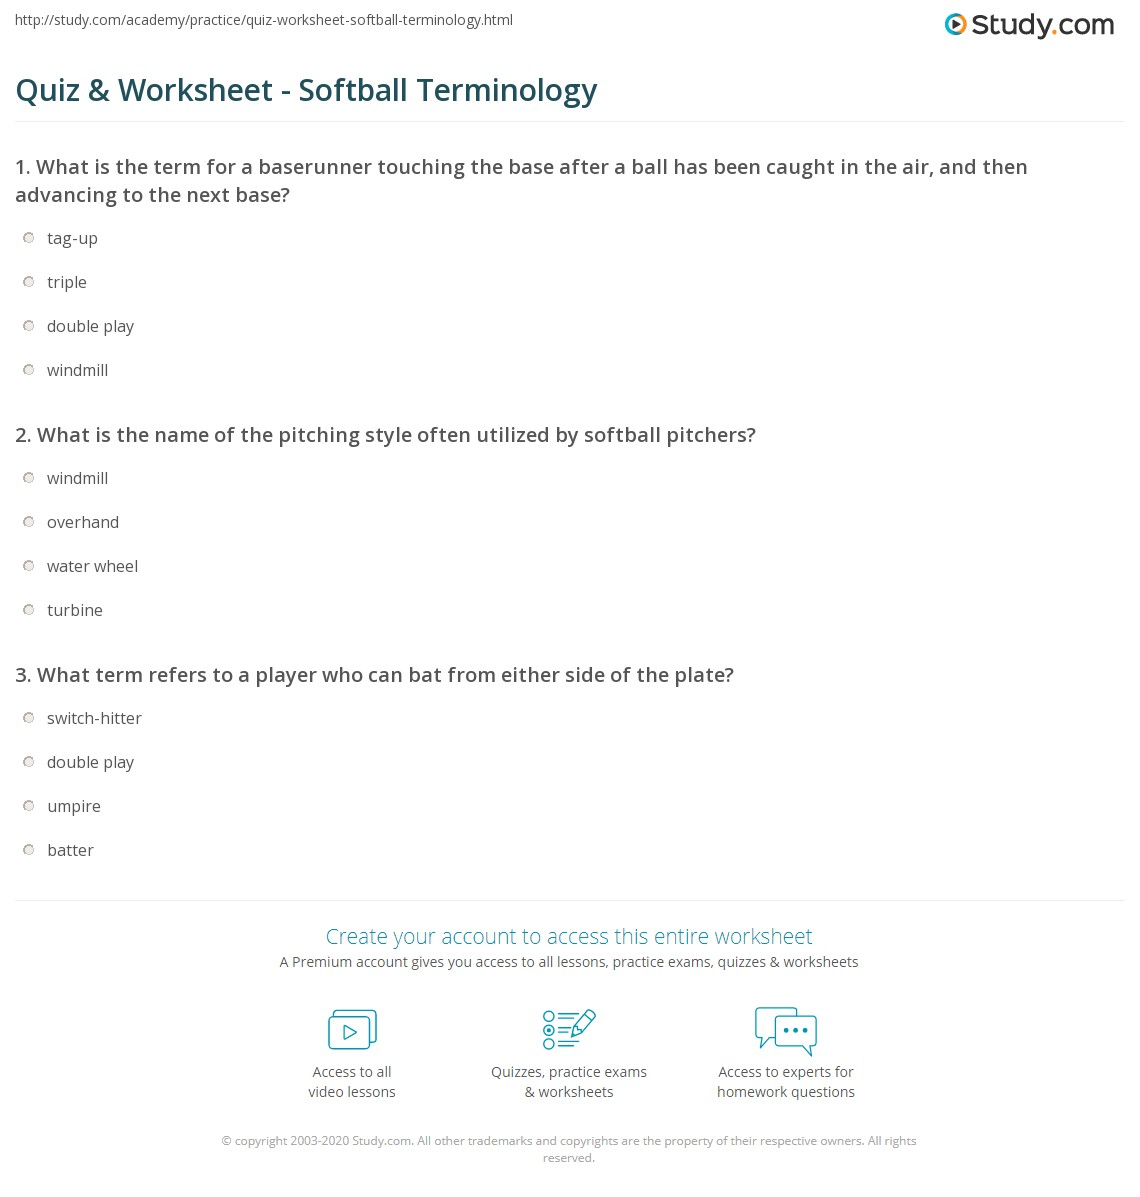 quiz worksheet softball terminology. Black Bedroom Furniture Sets. Home Design Ideas